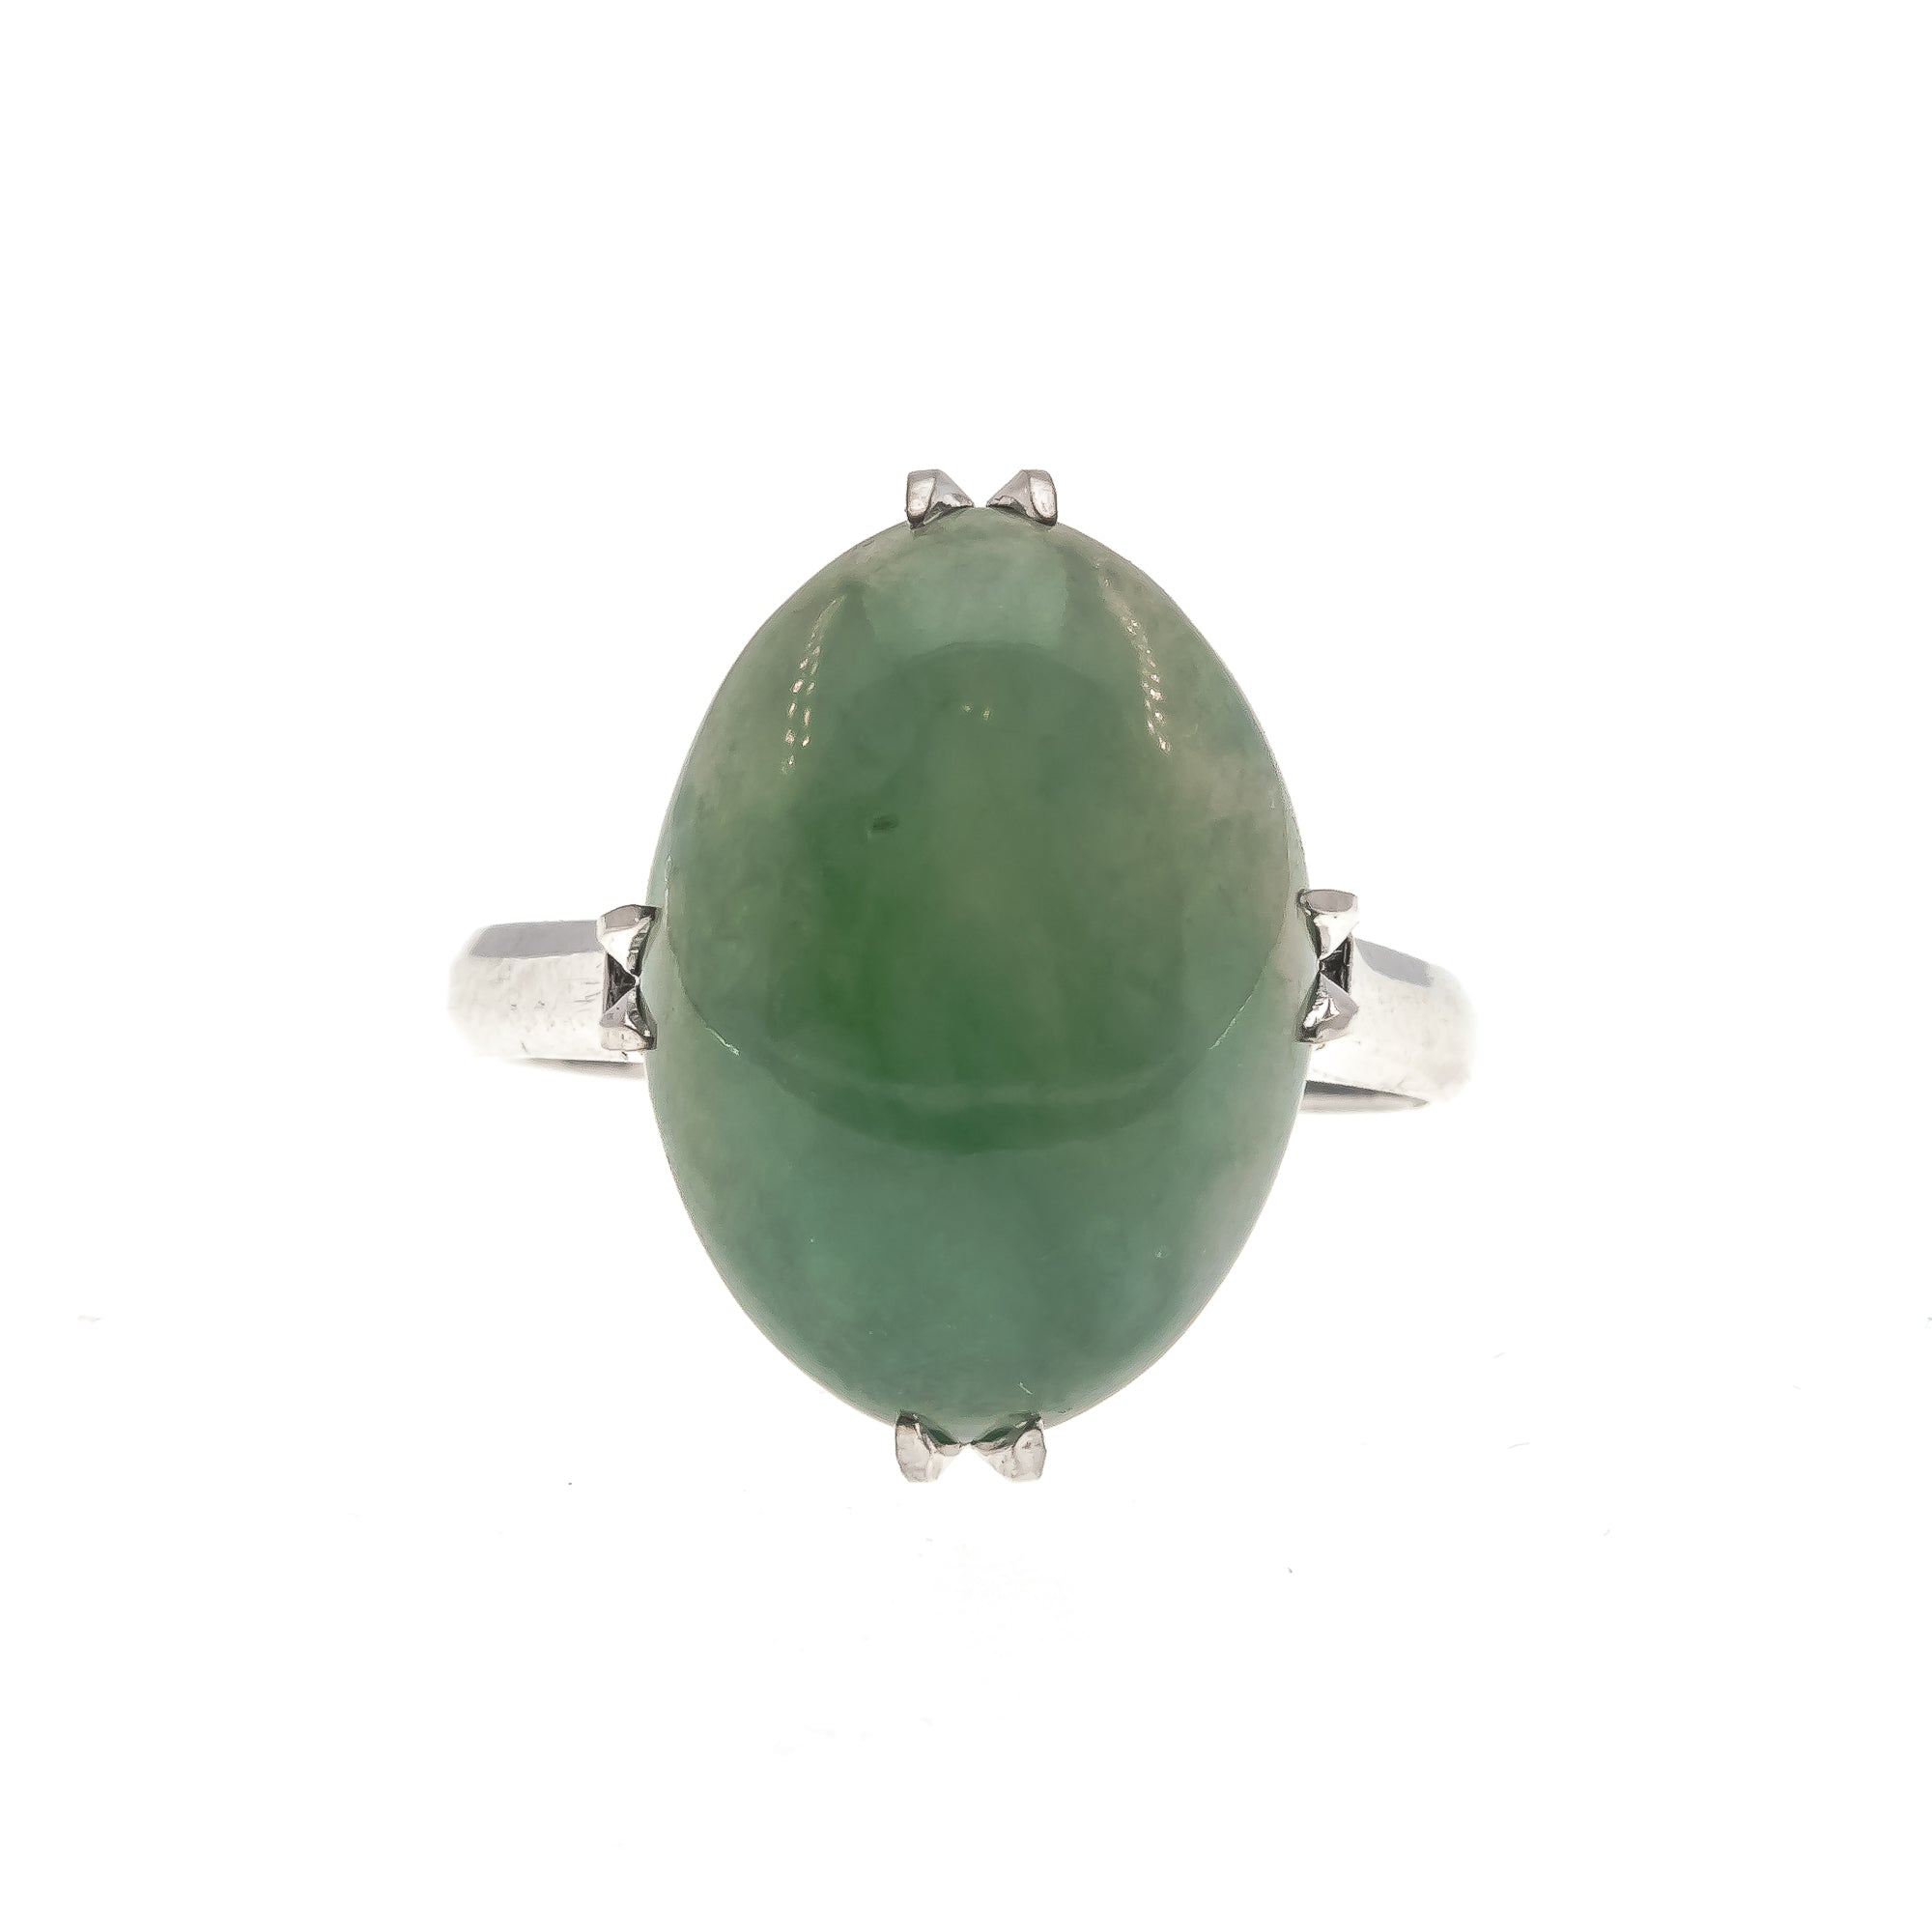 Pounamu In Retro - Art Deco Retro 14K Jade Ring (ADR164)